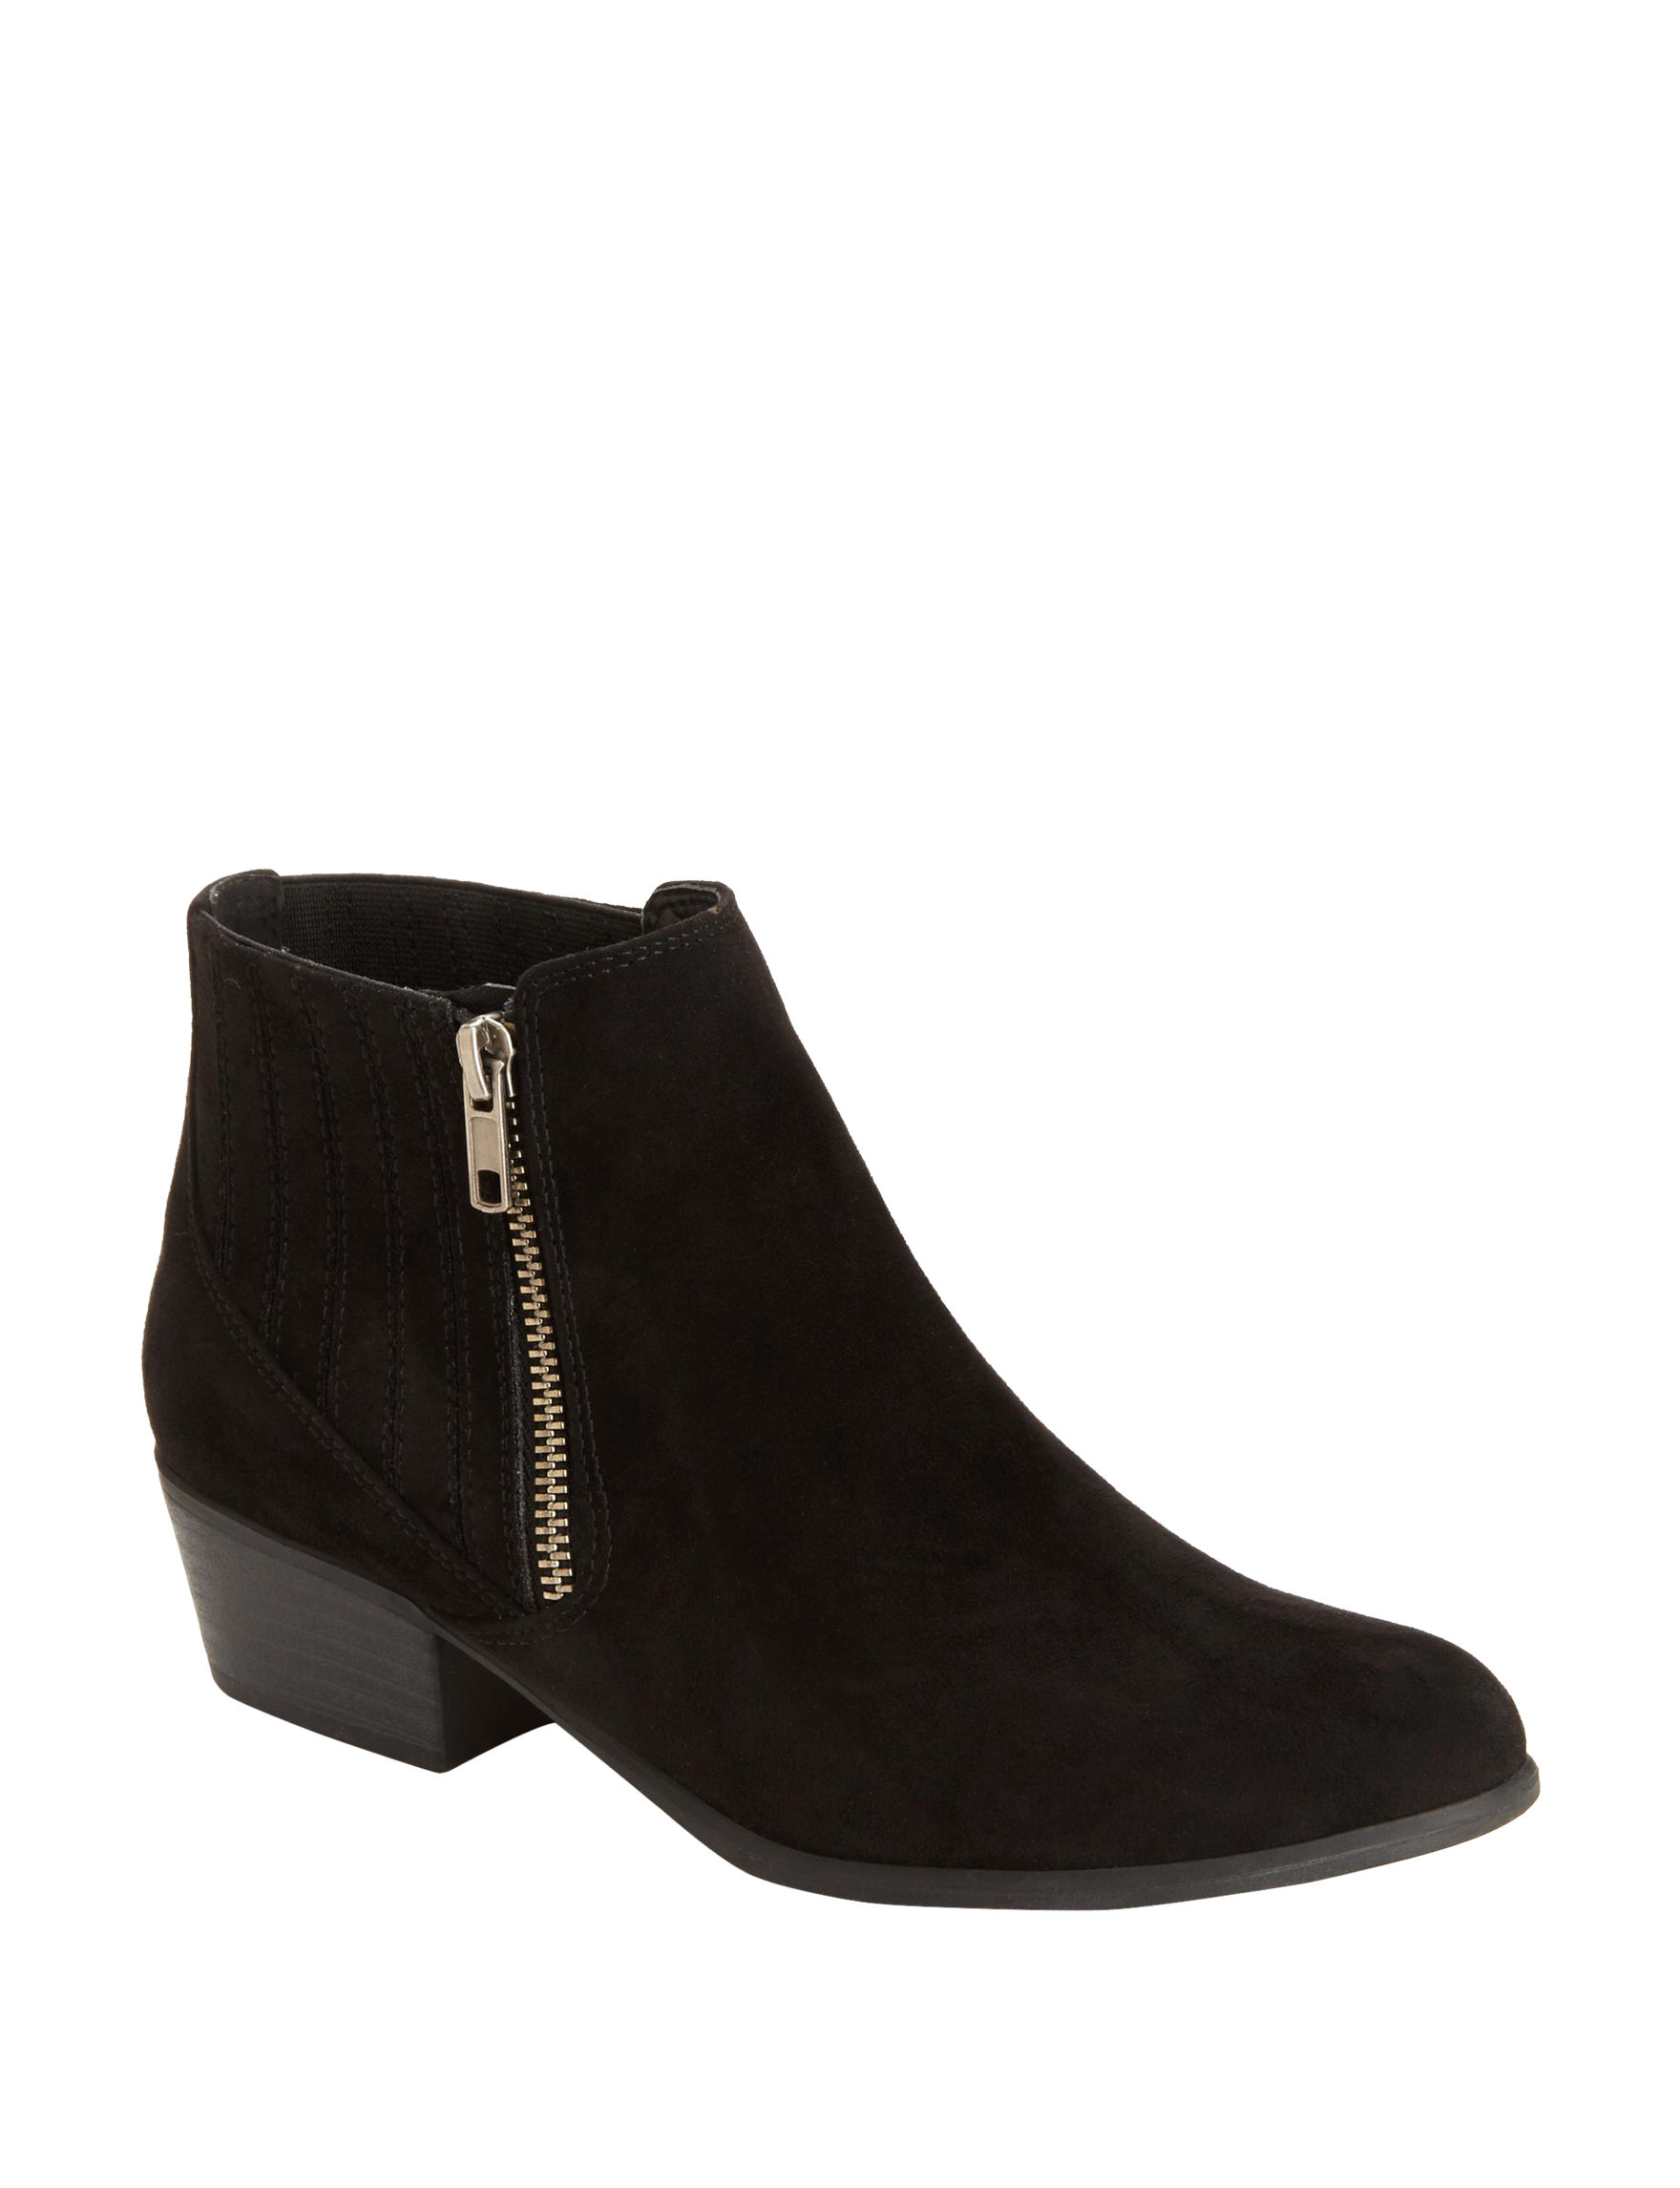 Espirit Black Ankle Boots & Booties